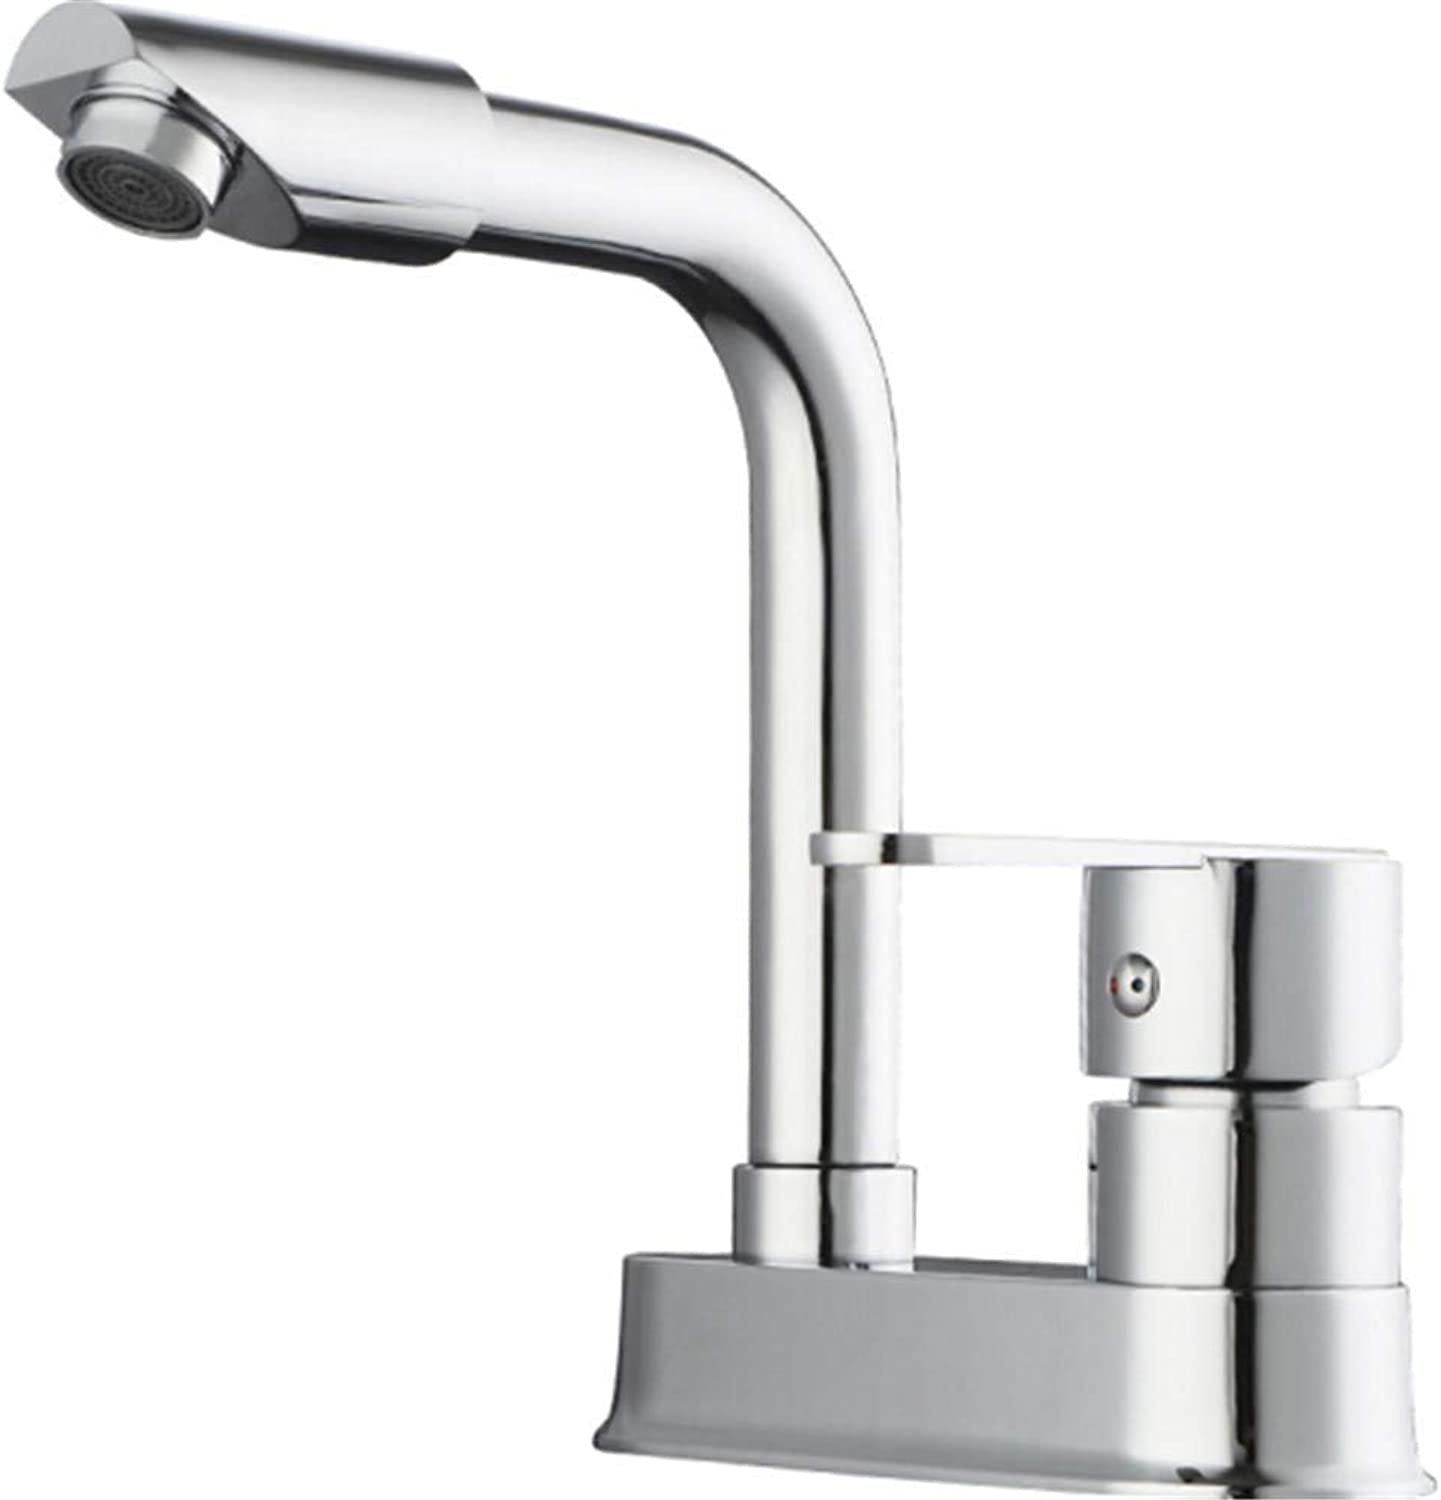 Water Tapdrinking Designer Archfacebasin Faucet Can redate Hot and Cold Water Faucet Wash Basin Faucet